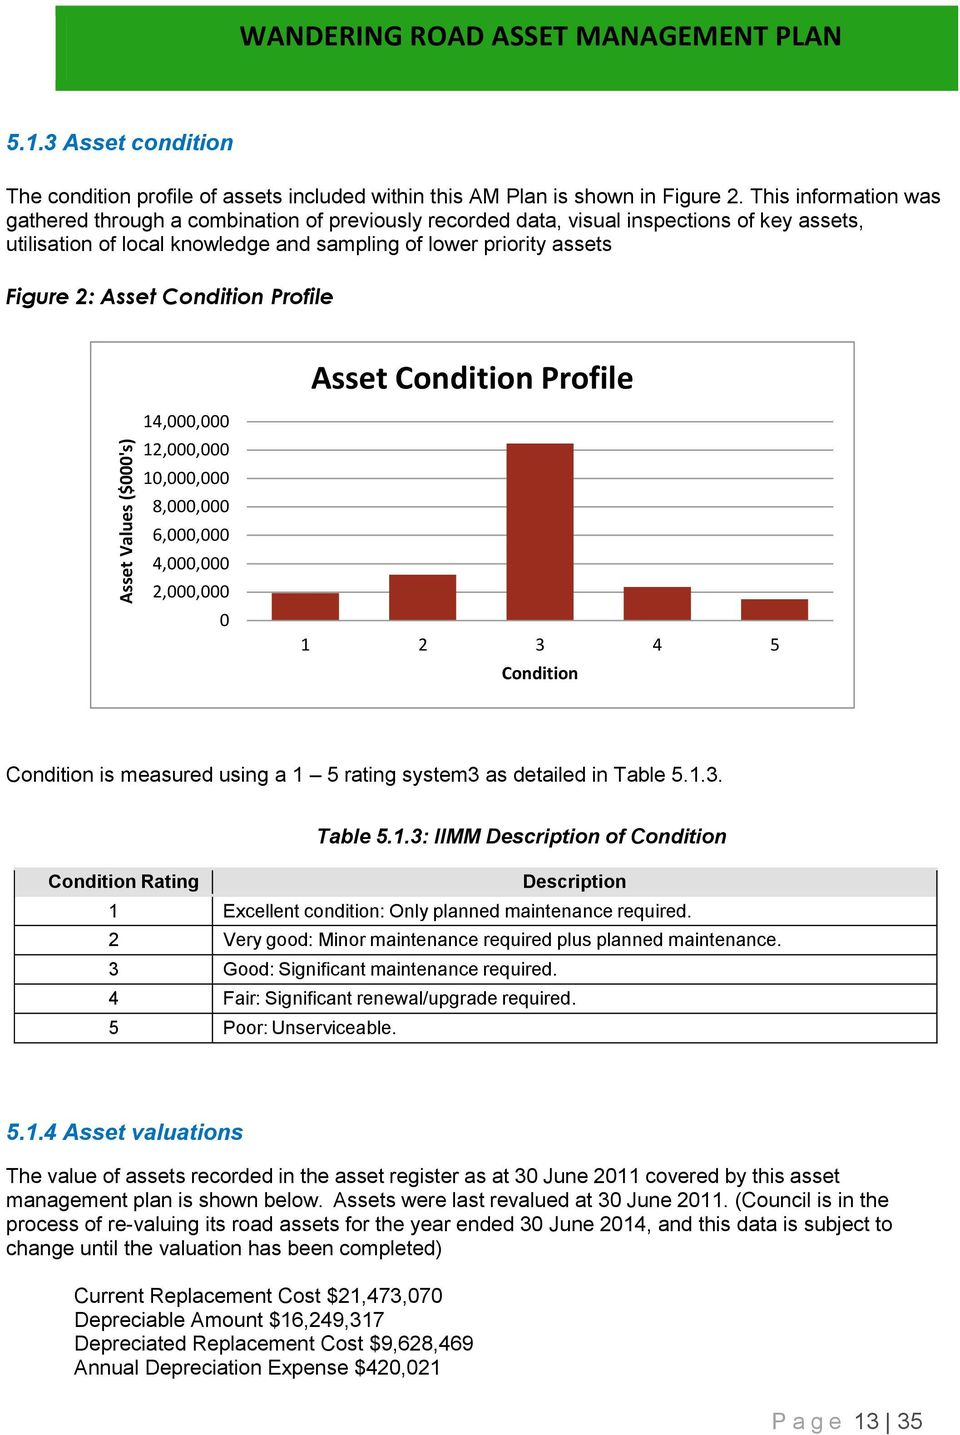 Condition Profile Asset Condition Profile 14,000,000 12,000,000 10,000,000 8,000,000 6,000,000 4,000,000 2,000,000 0 1 2 3 4 5 Condition Condition is measured using a 1 5 rating system3 as detailed